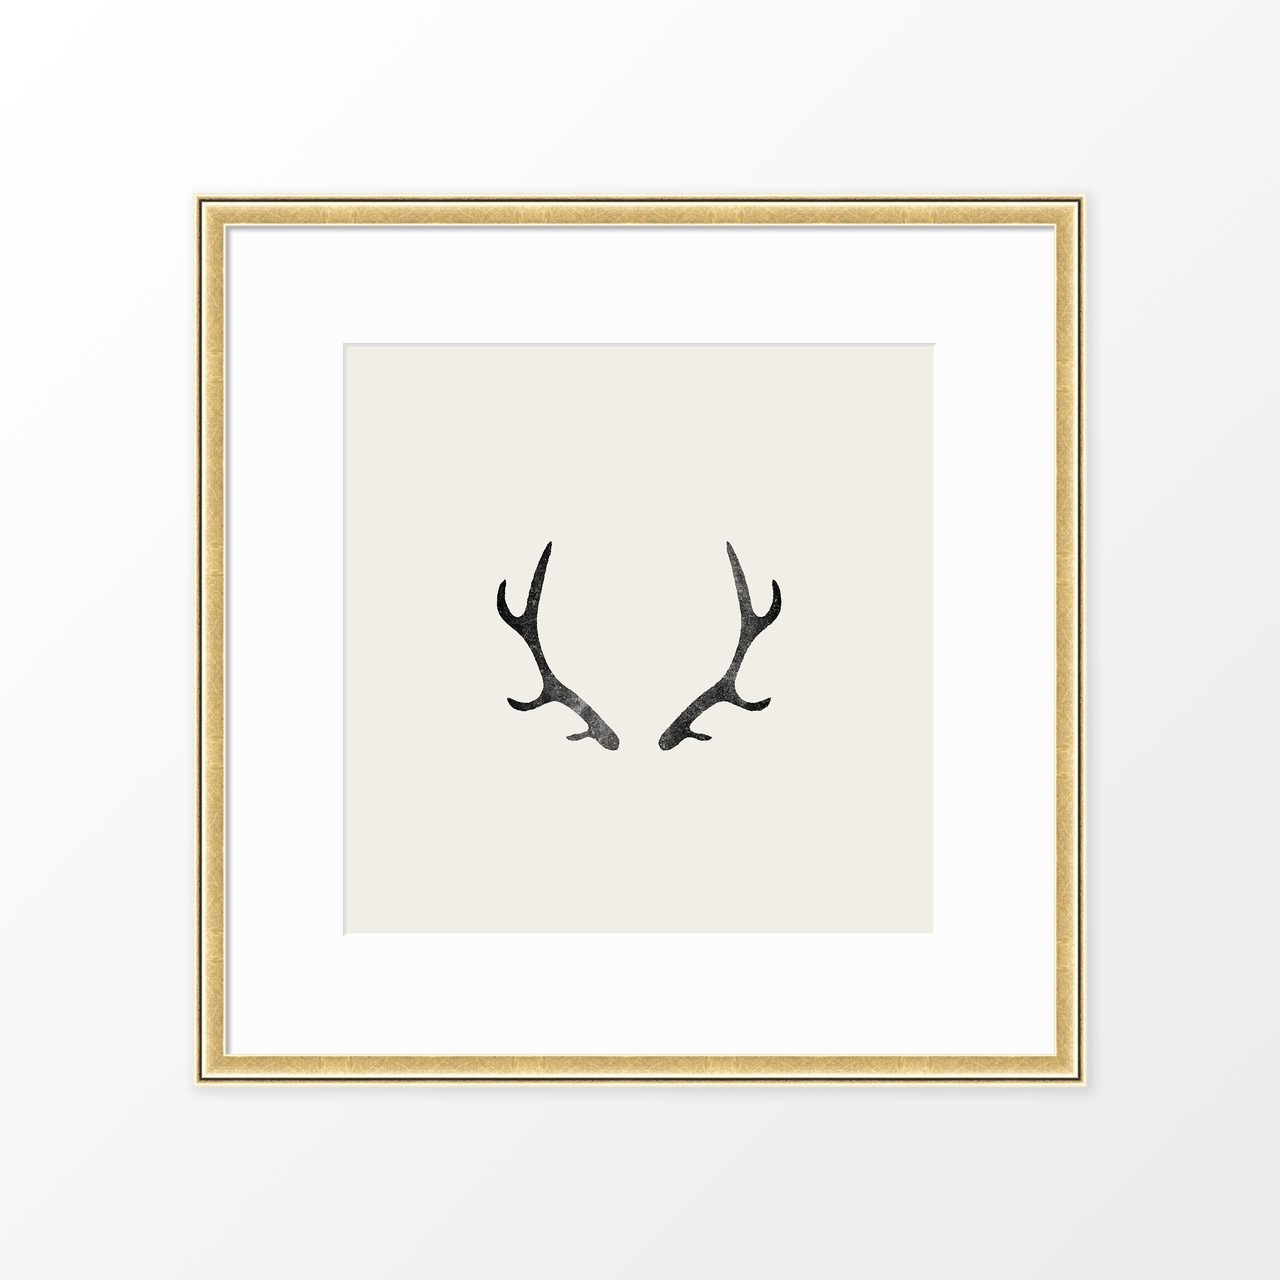 'Antlers' Block-printed Art Print from The Printed Home